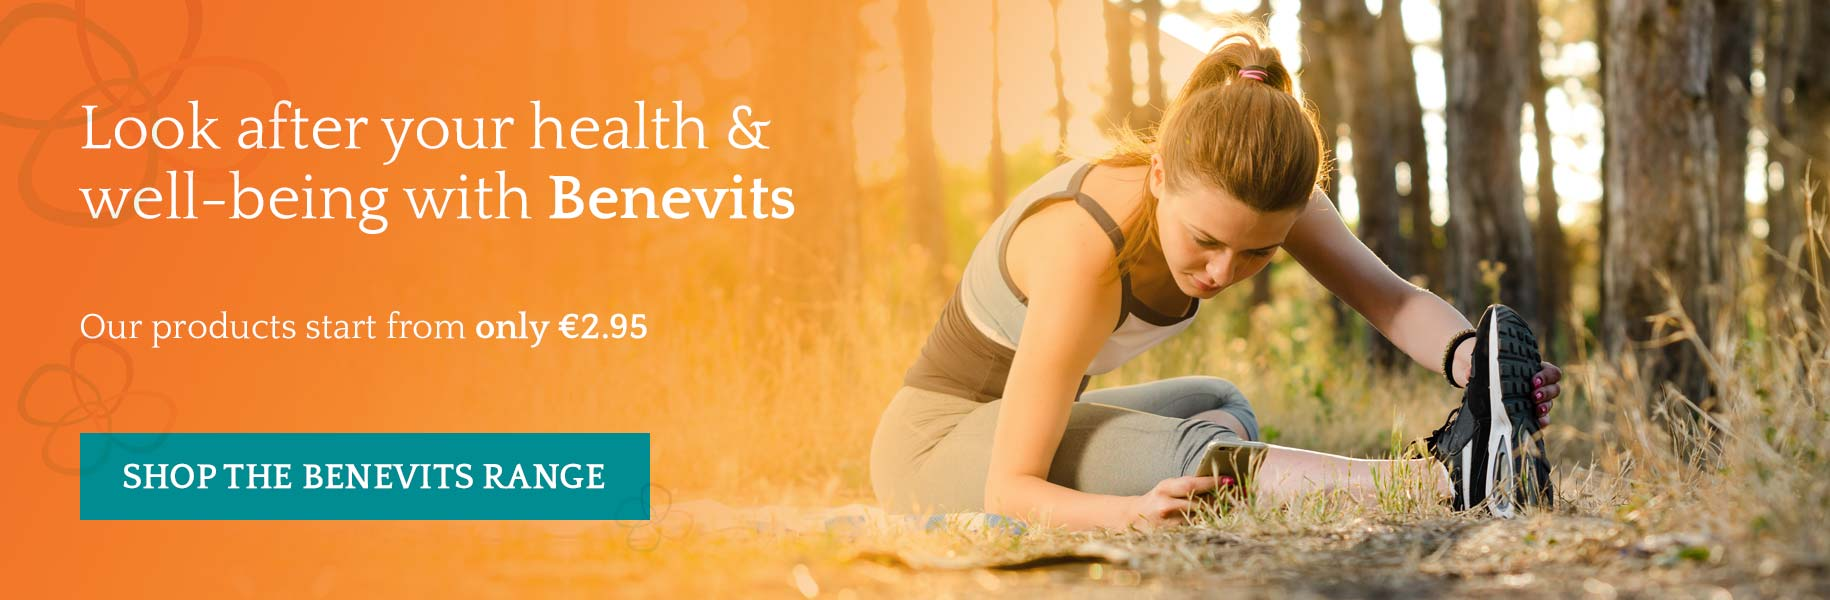 Look after your health and well-being with Benevits, shop the range now